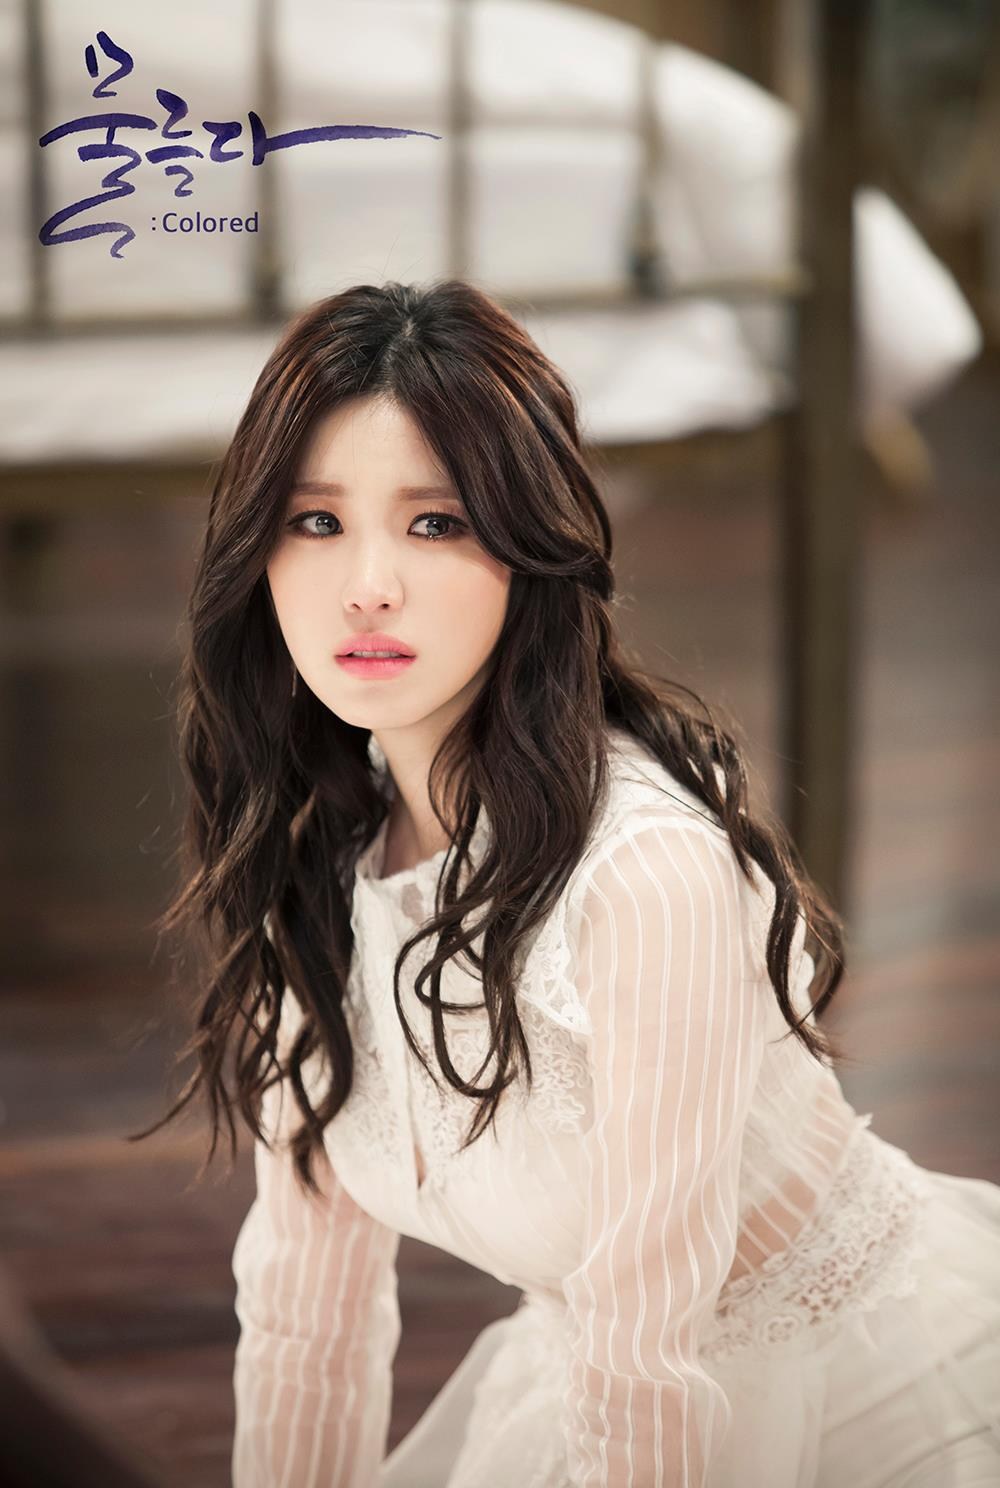 Image: SECRET Hyosung Colored EP / TS Entertainment